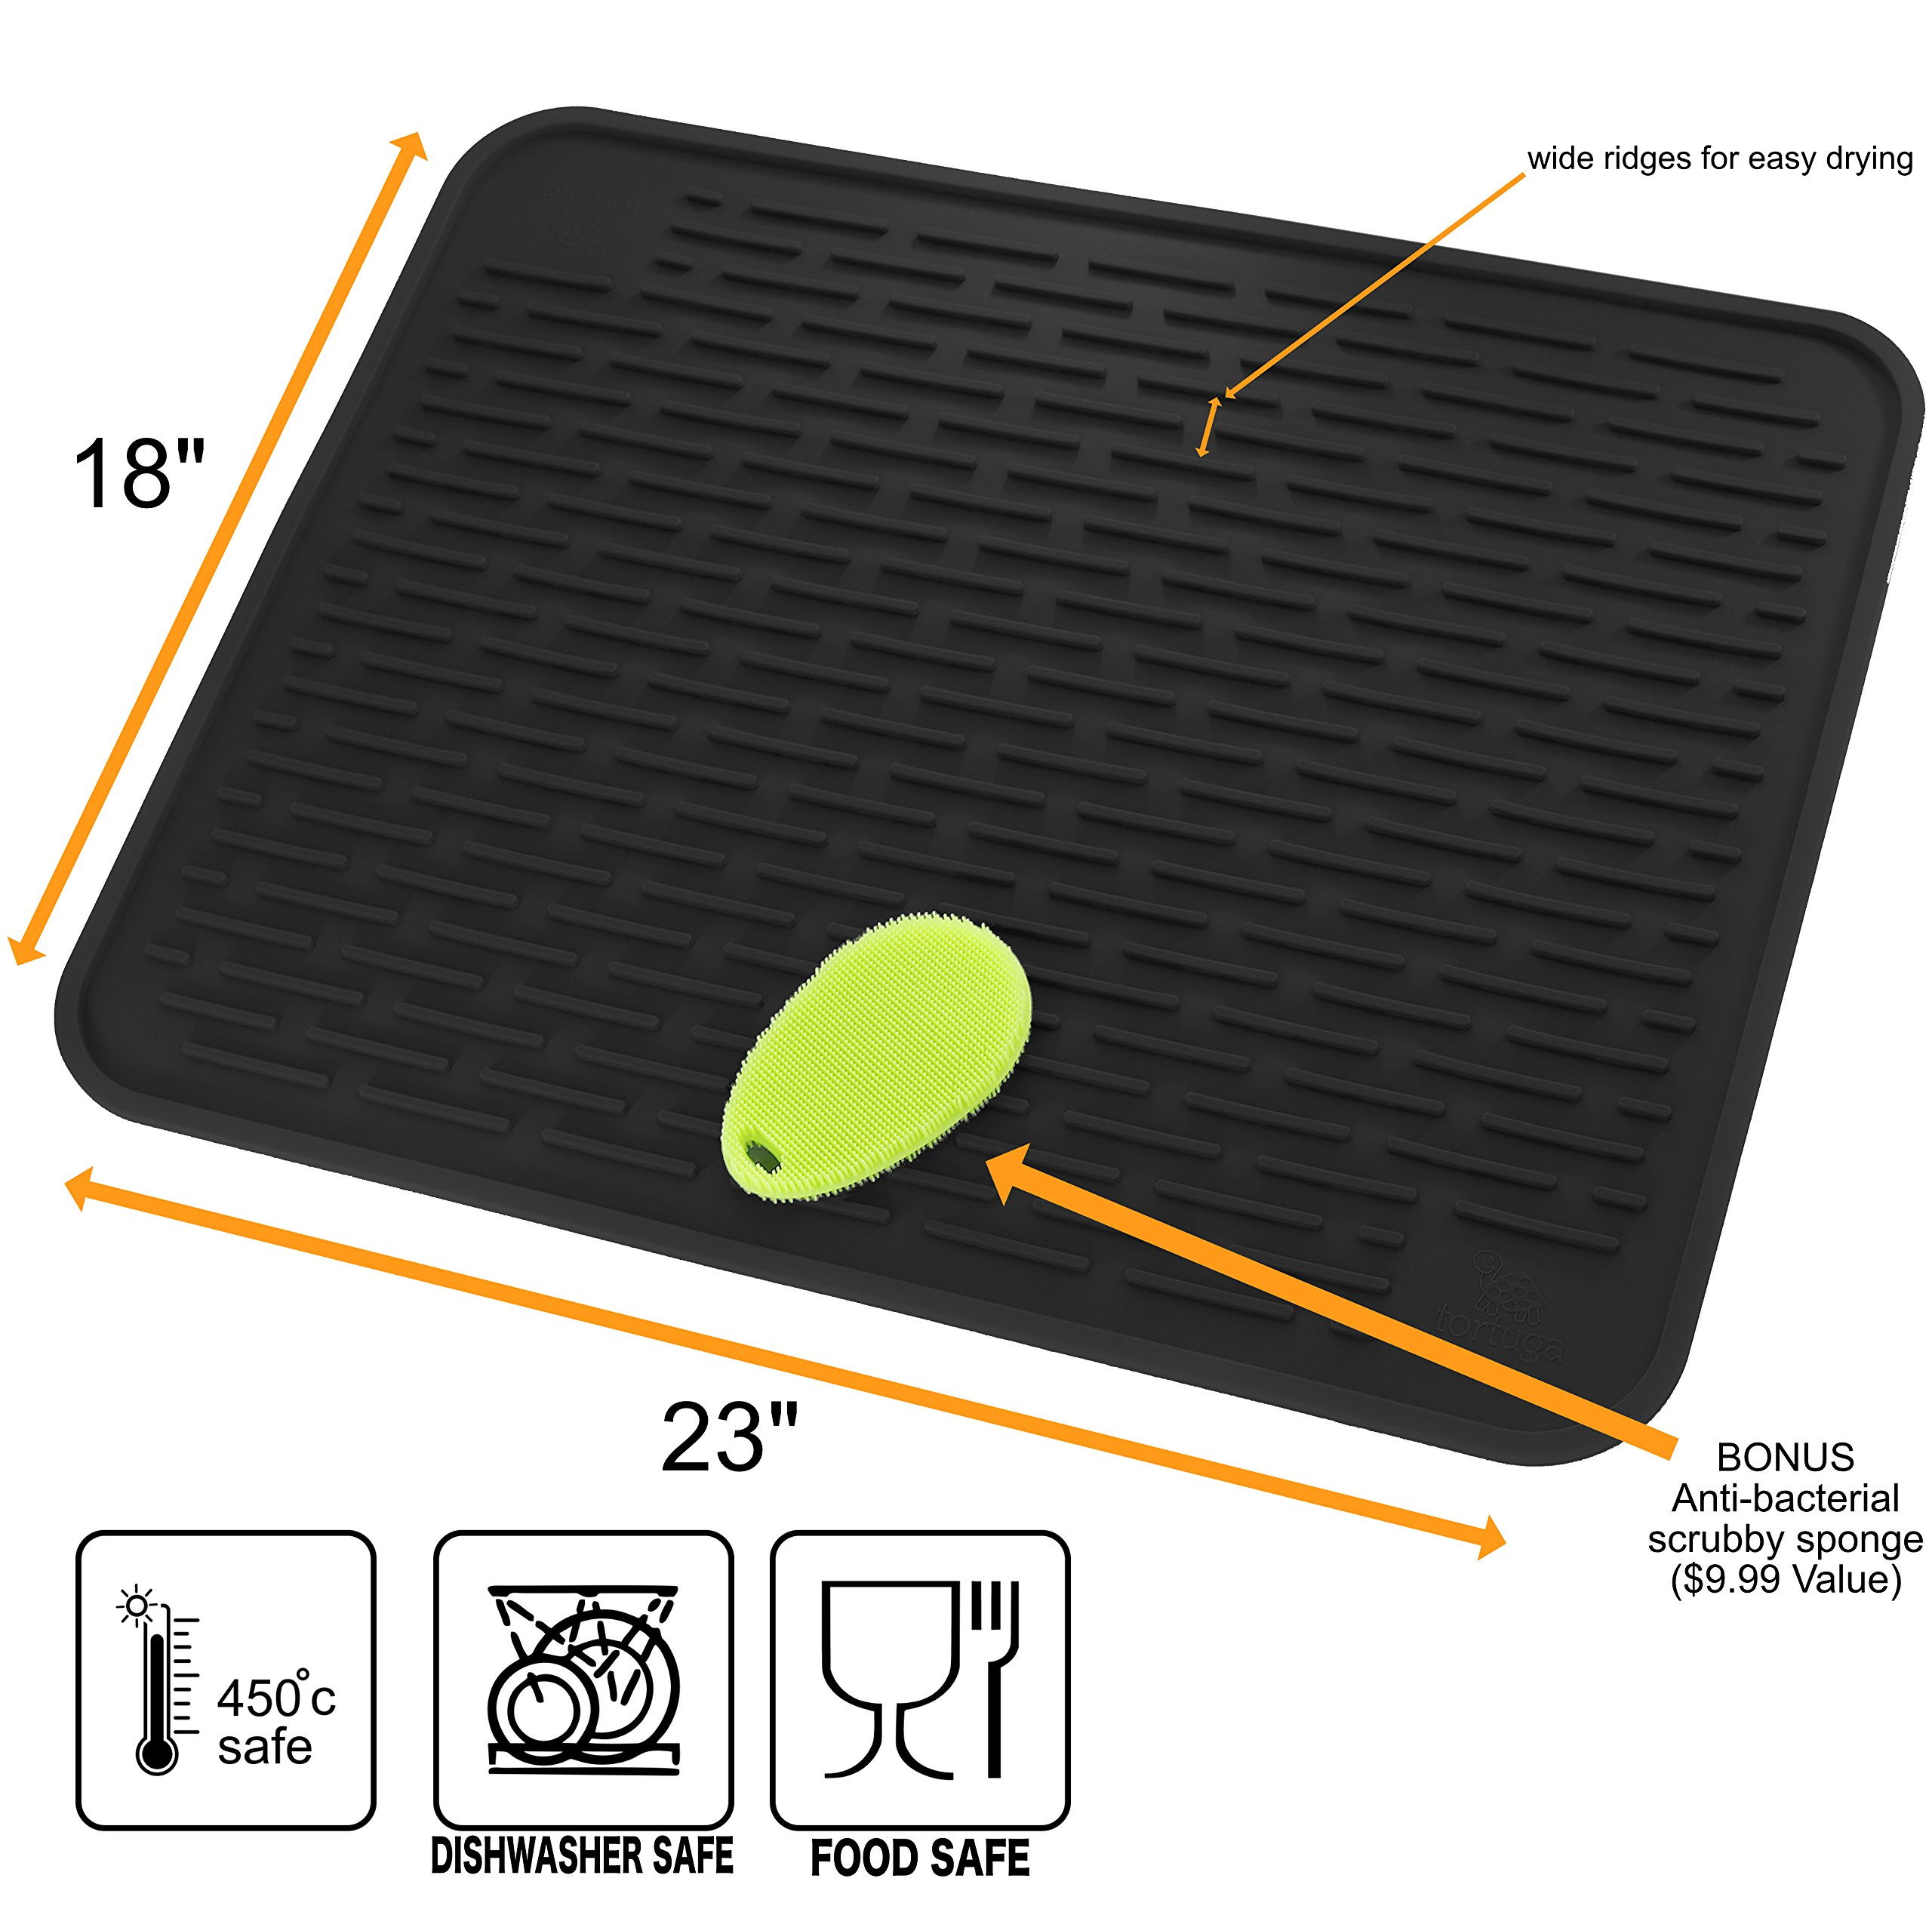 Premium Largest 23'' x 18'' Silicone Dish Drying Mat and Scrubber | Counter Top Mat | Anti Bacterial | Dish Washer Safe | Heat Resistant Trivet | Countertop Protector (XXL Black) by Tortuga Home Goods (Image #3)